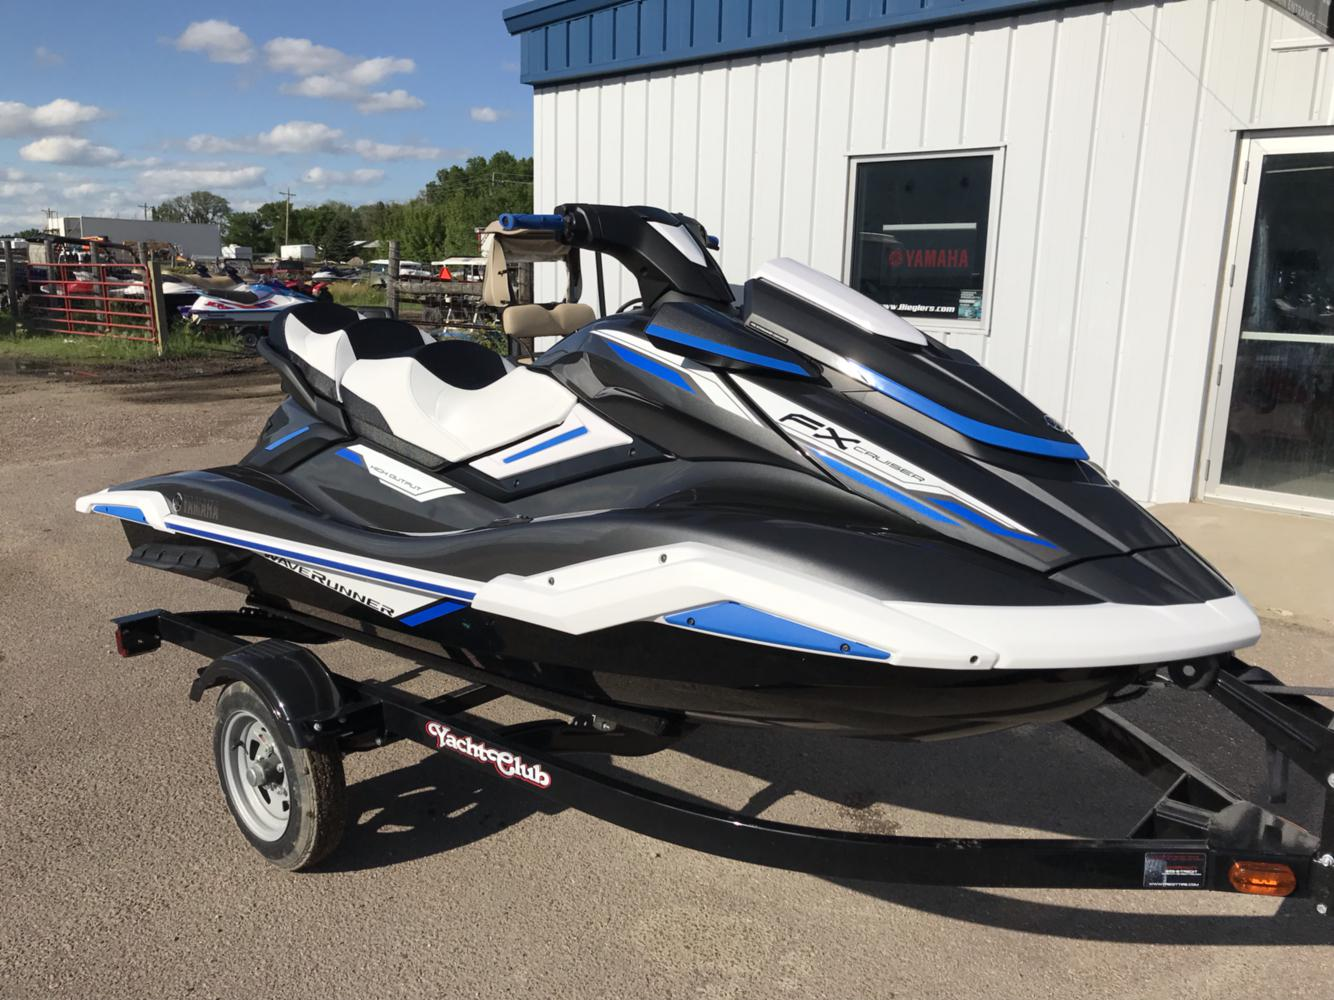 Inventory from Yamaha Biegler's C&S Motorsports Aberdeen, SD